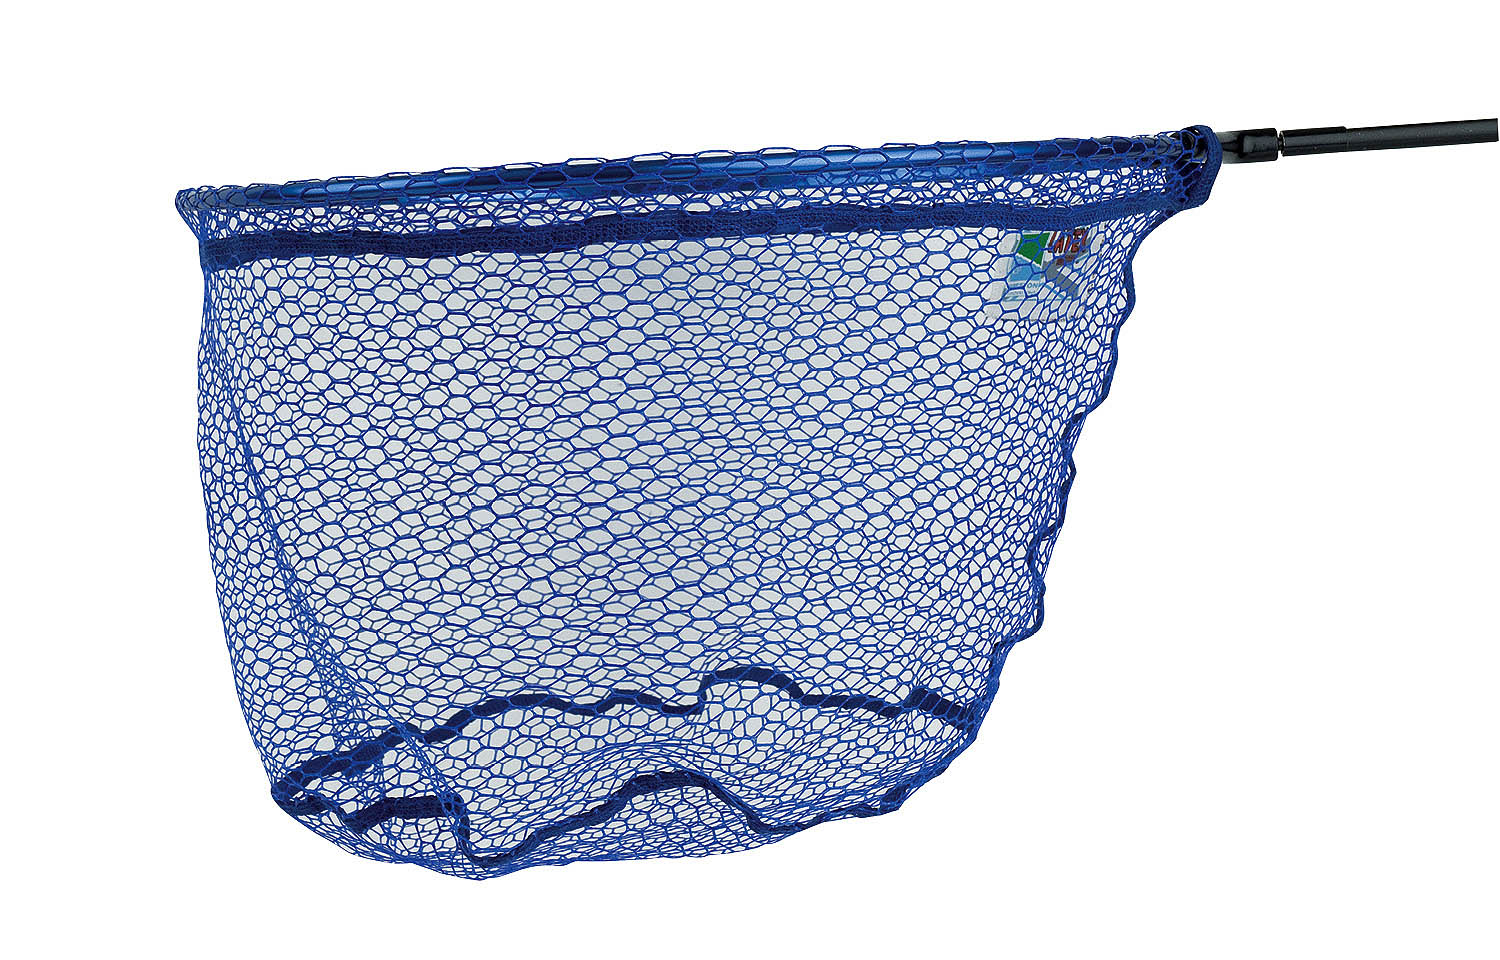 SHALLOW LATEX LADING NET